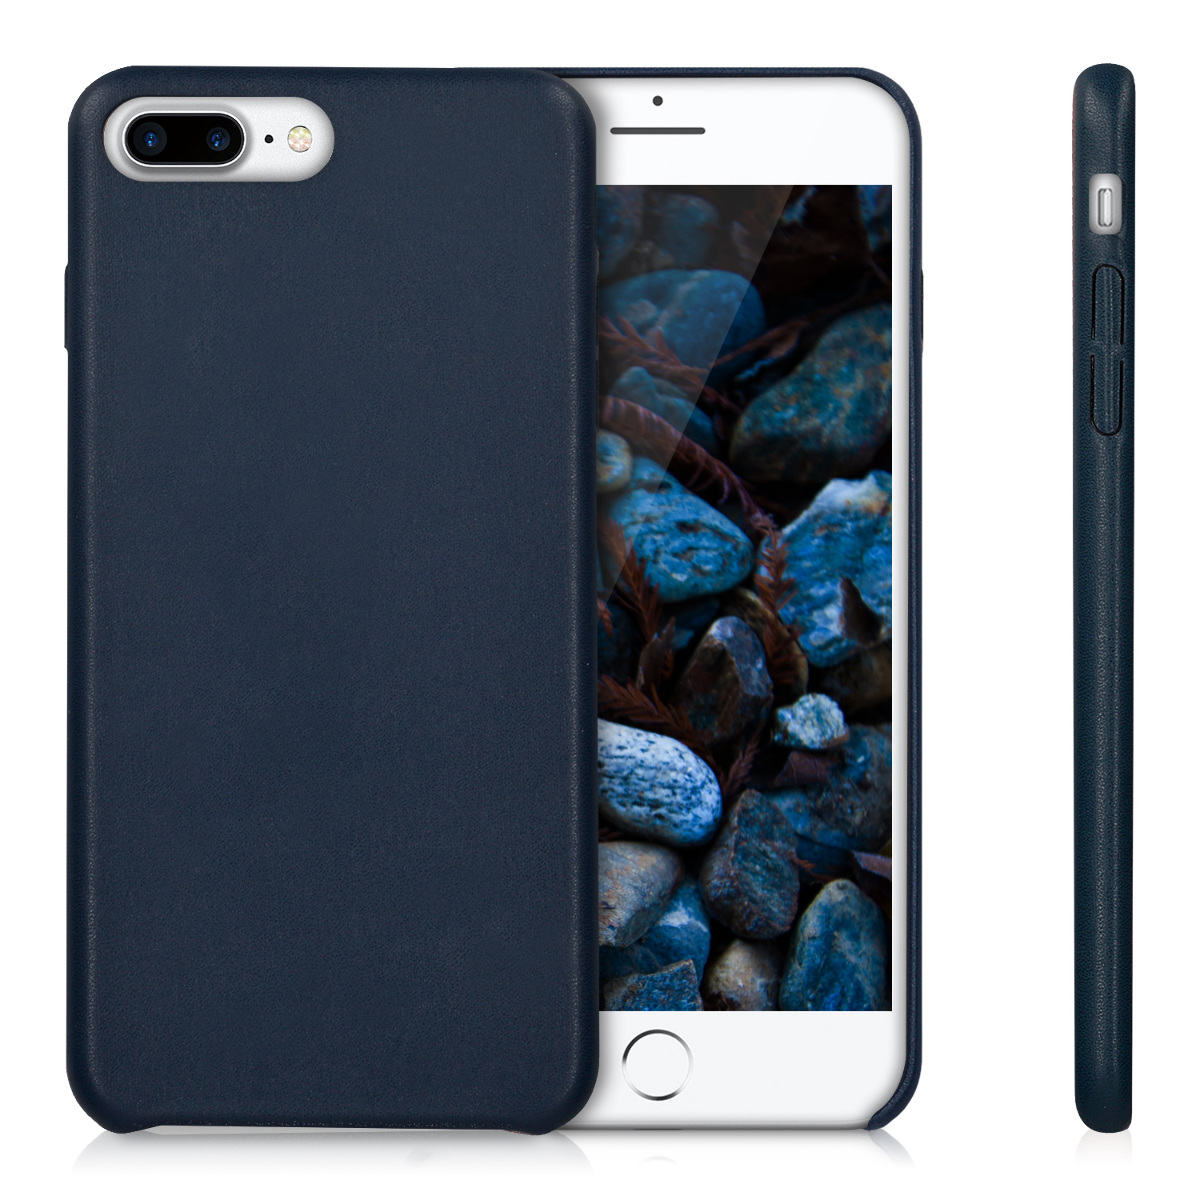 kwmobile-FUNDA-BLANDA-PARA-APPLE-IPHONE-7-PLUS-8-PLUS-CUERO-SINTETICO-CARCASA